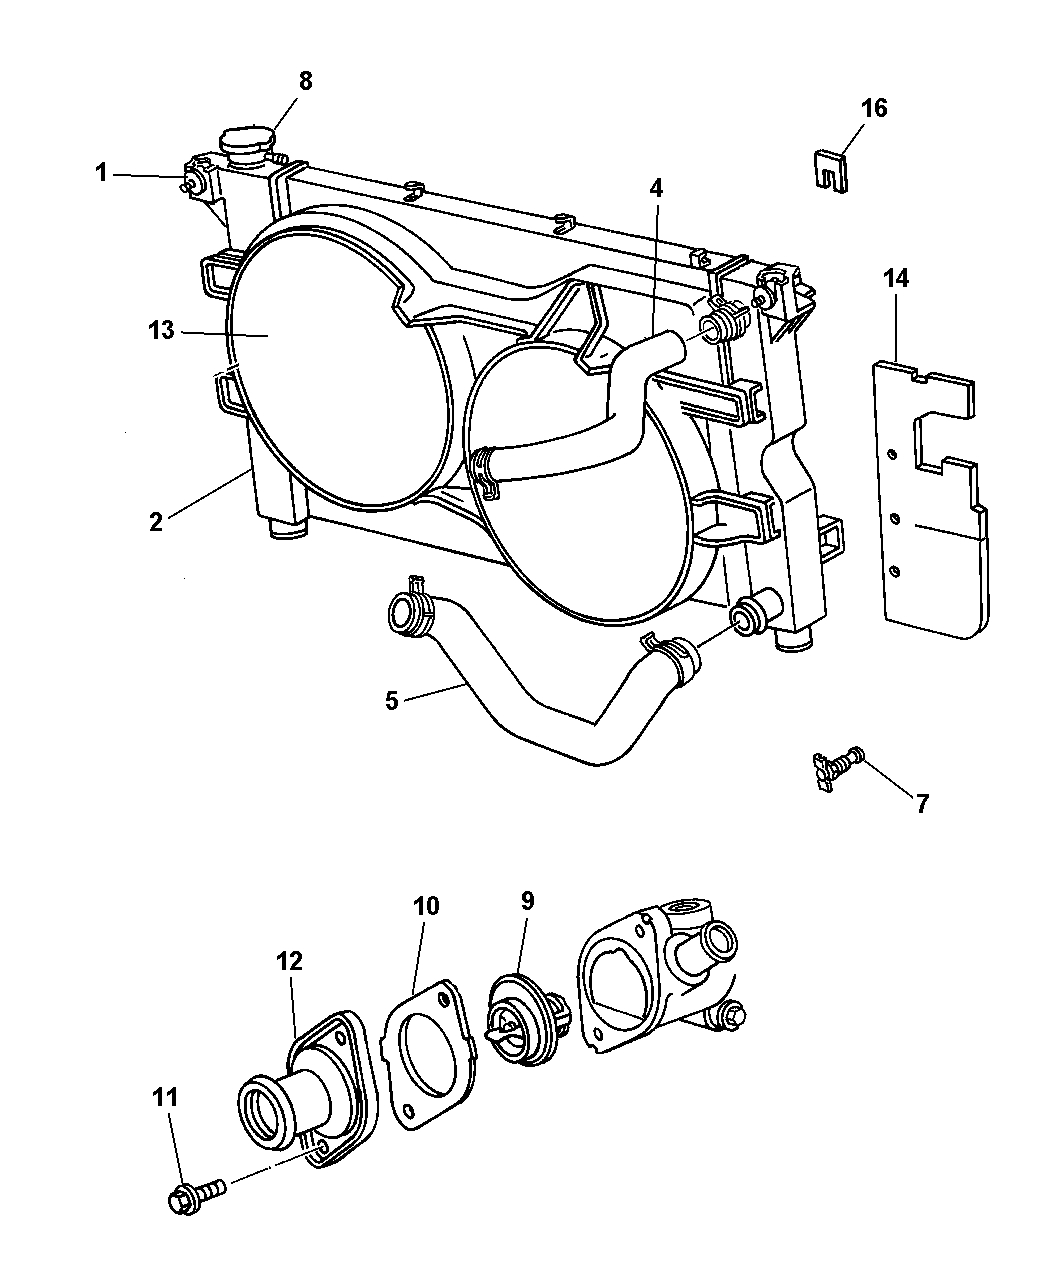 4781661Aa - Genuine Mopar Gasket-Thermostat in 2001 Chrysler Town And Country Parts Diagram